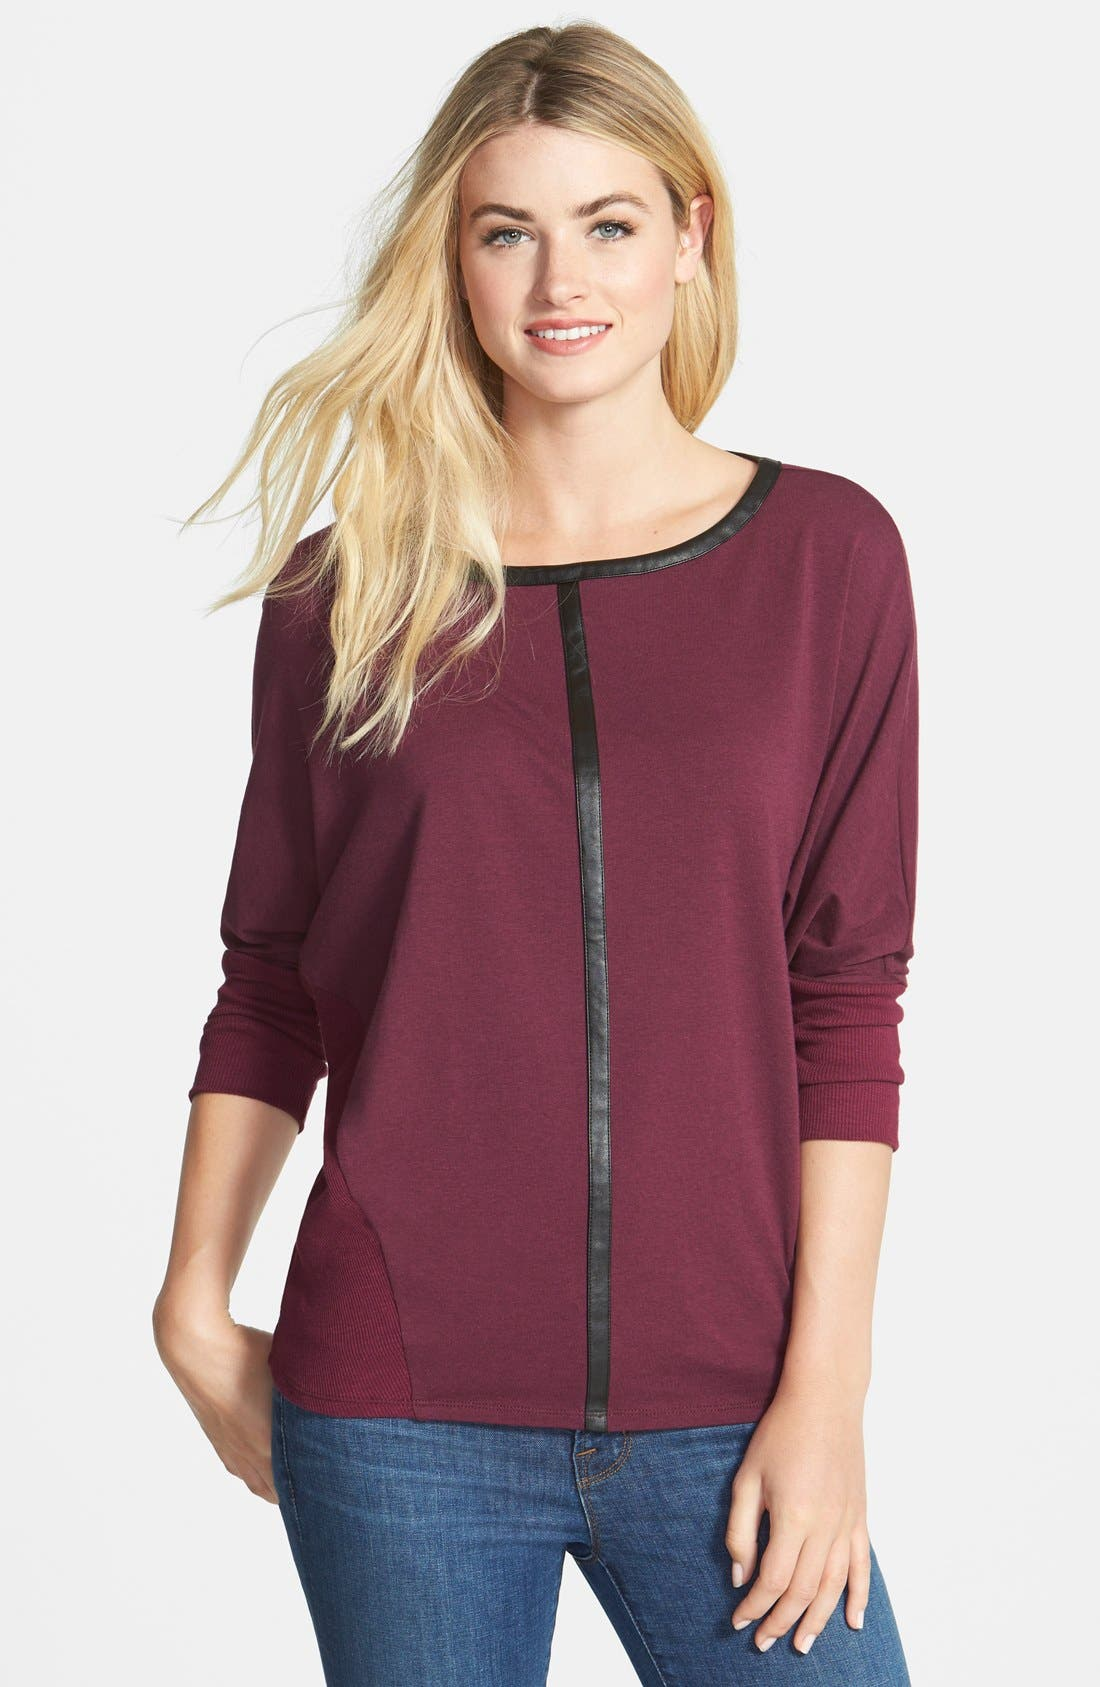 Main Image - Two by Vince Camuto 'Saturday' Faux Leather Trim Jersey Shirt